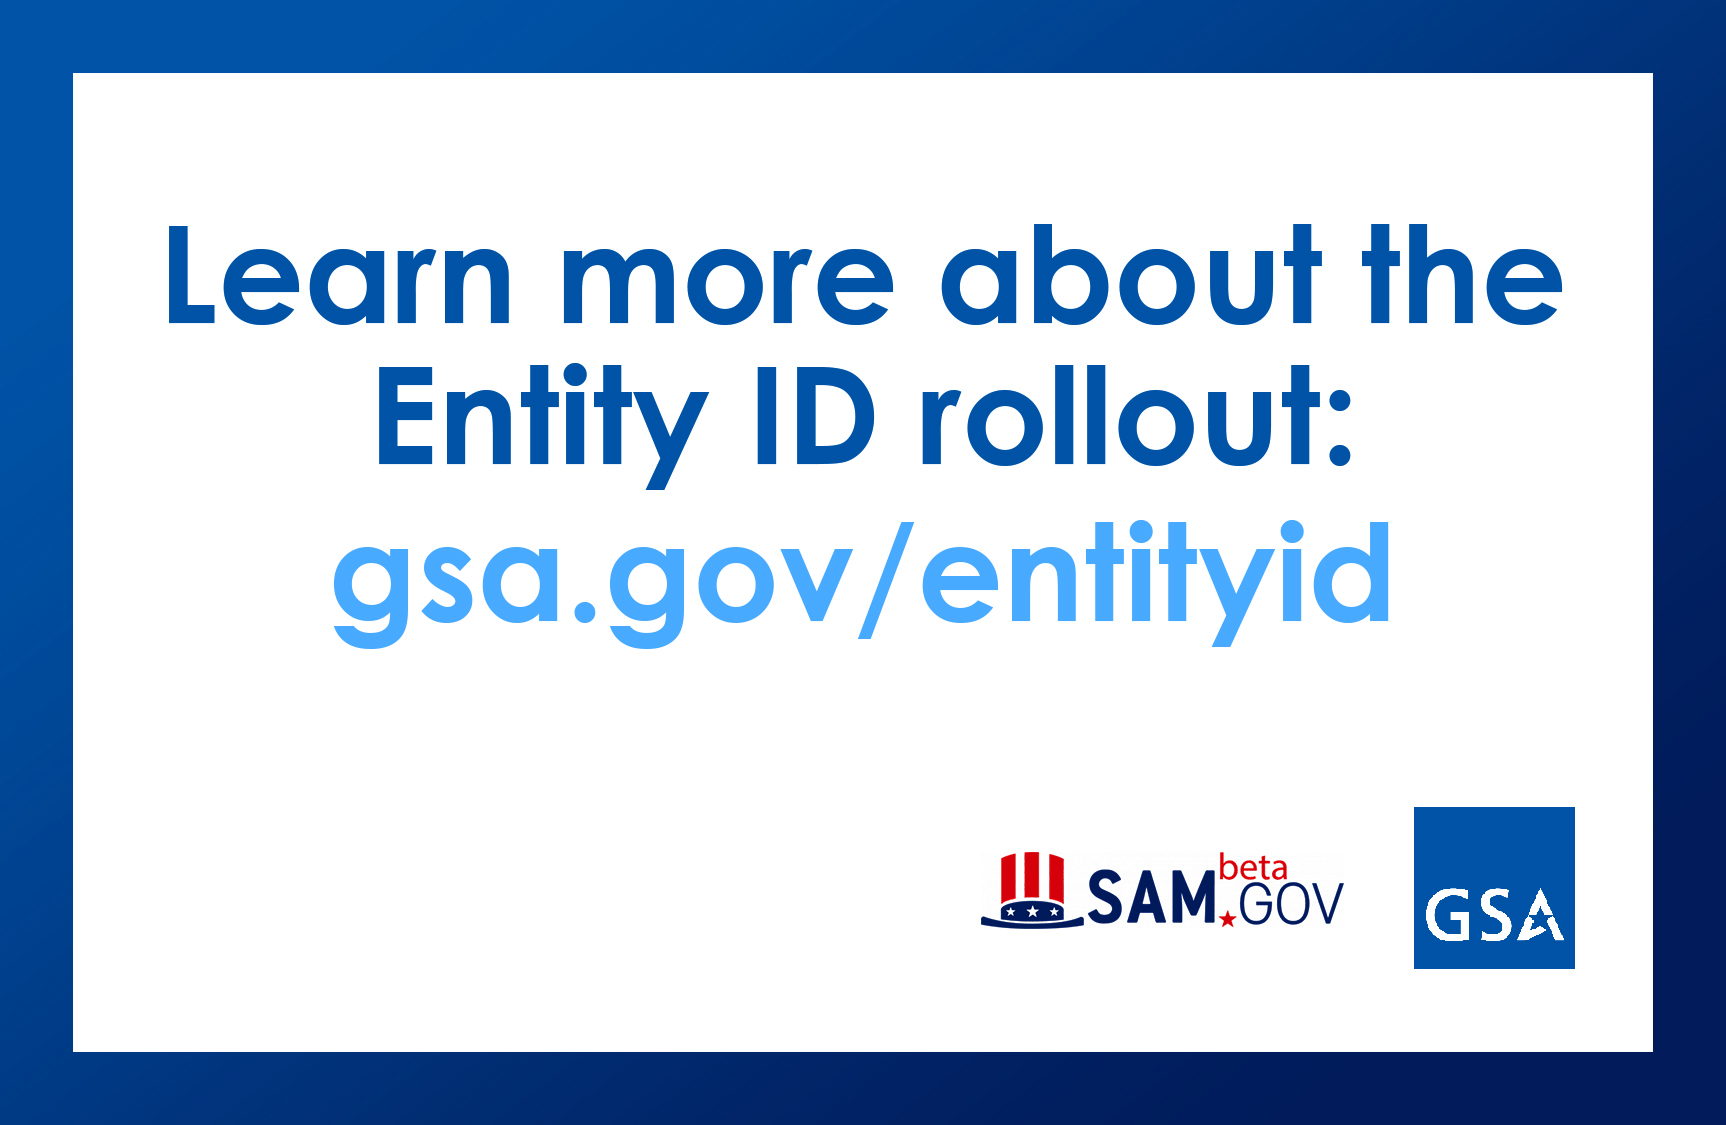 Learn more about the Entity ID rollout